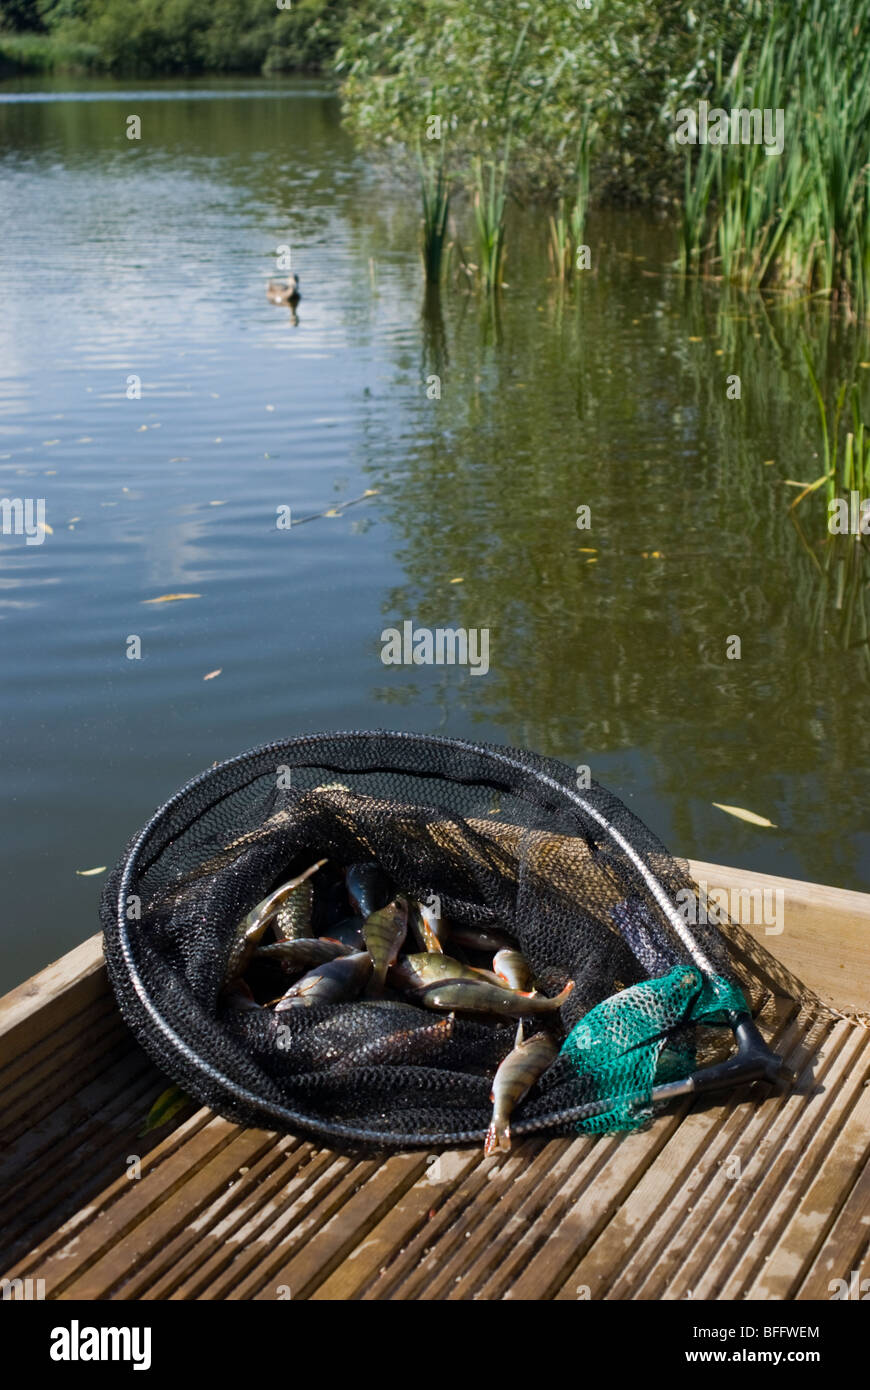 A landing net containing small perch caught from a lake - Stock Image